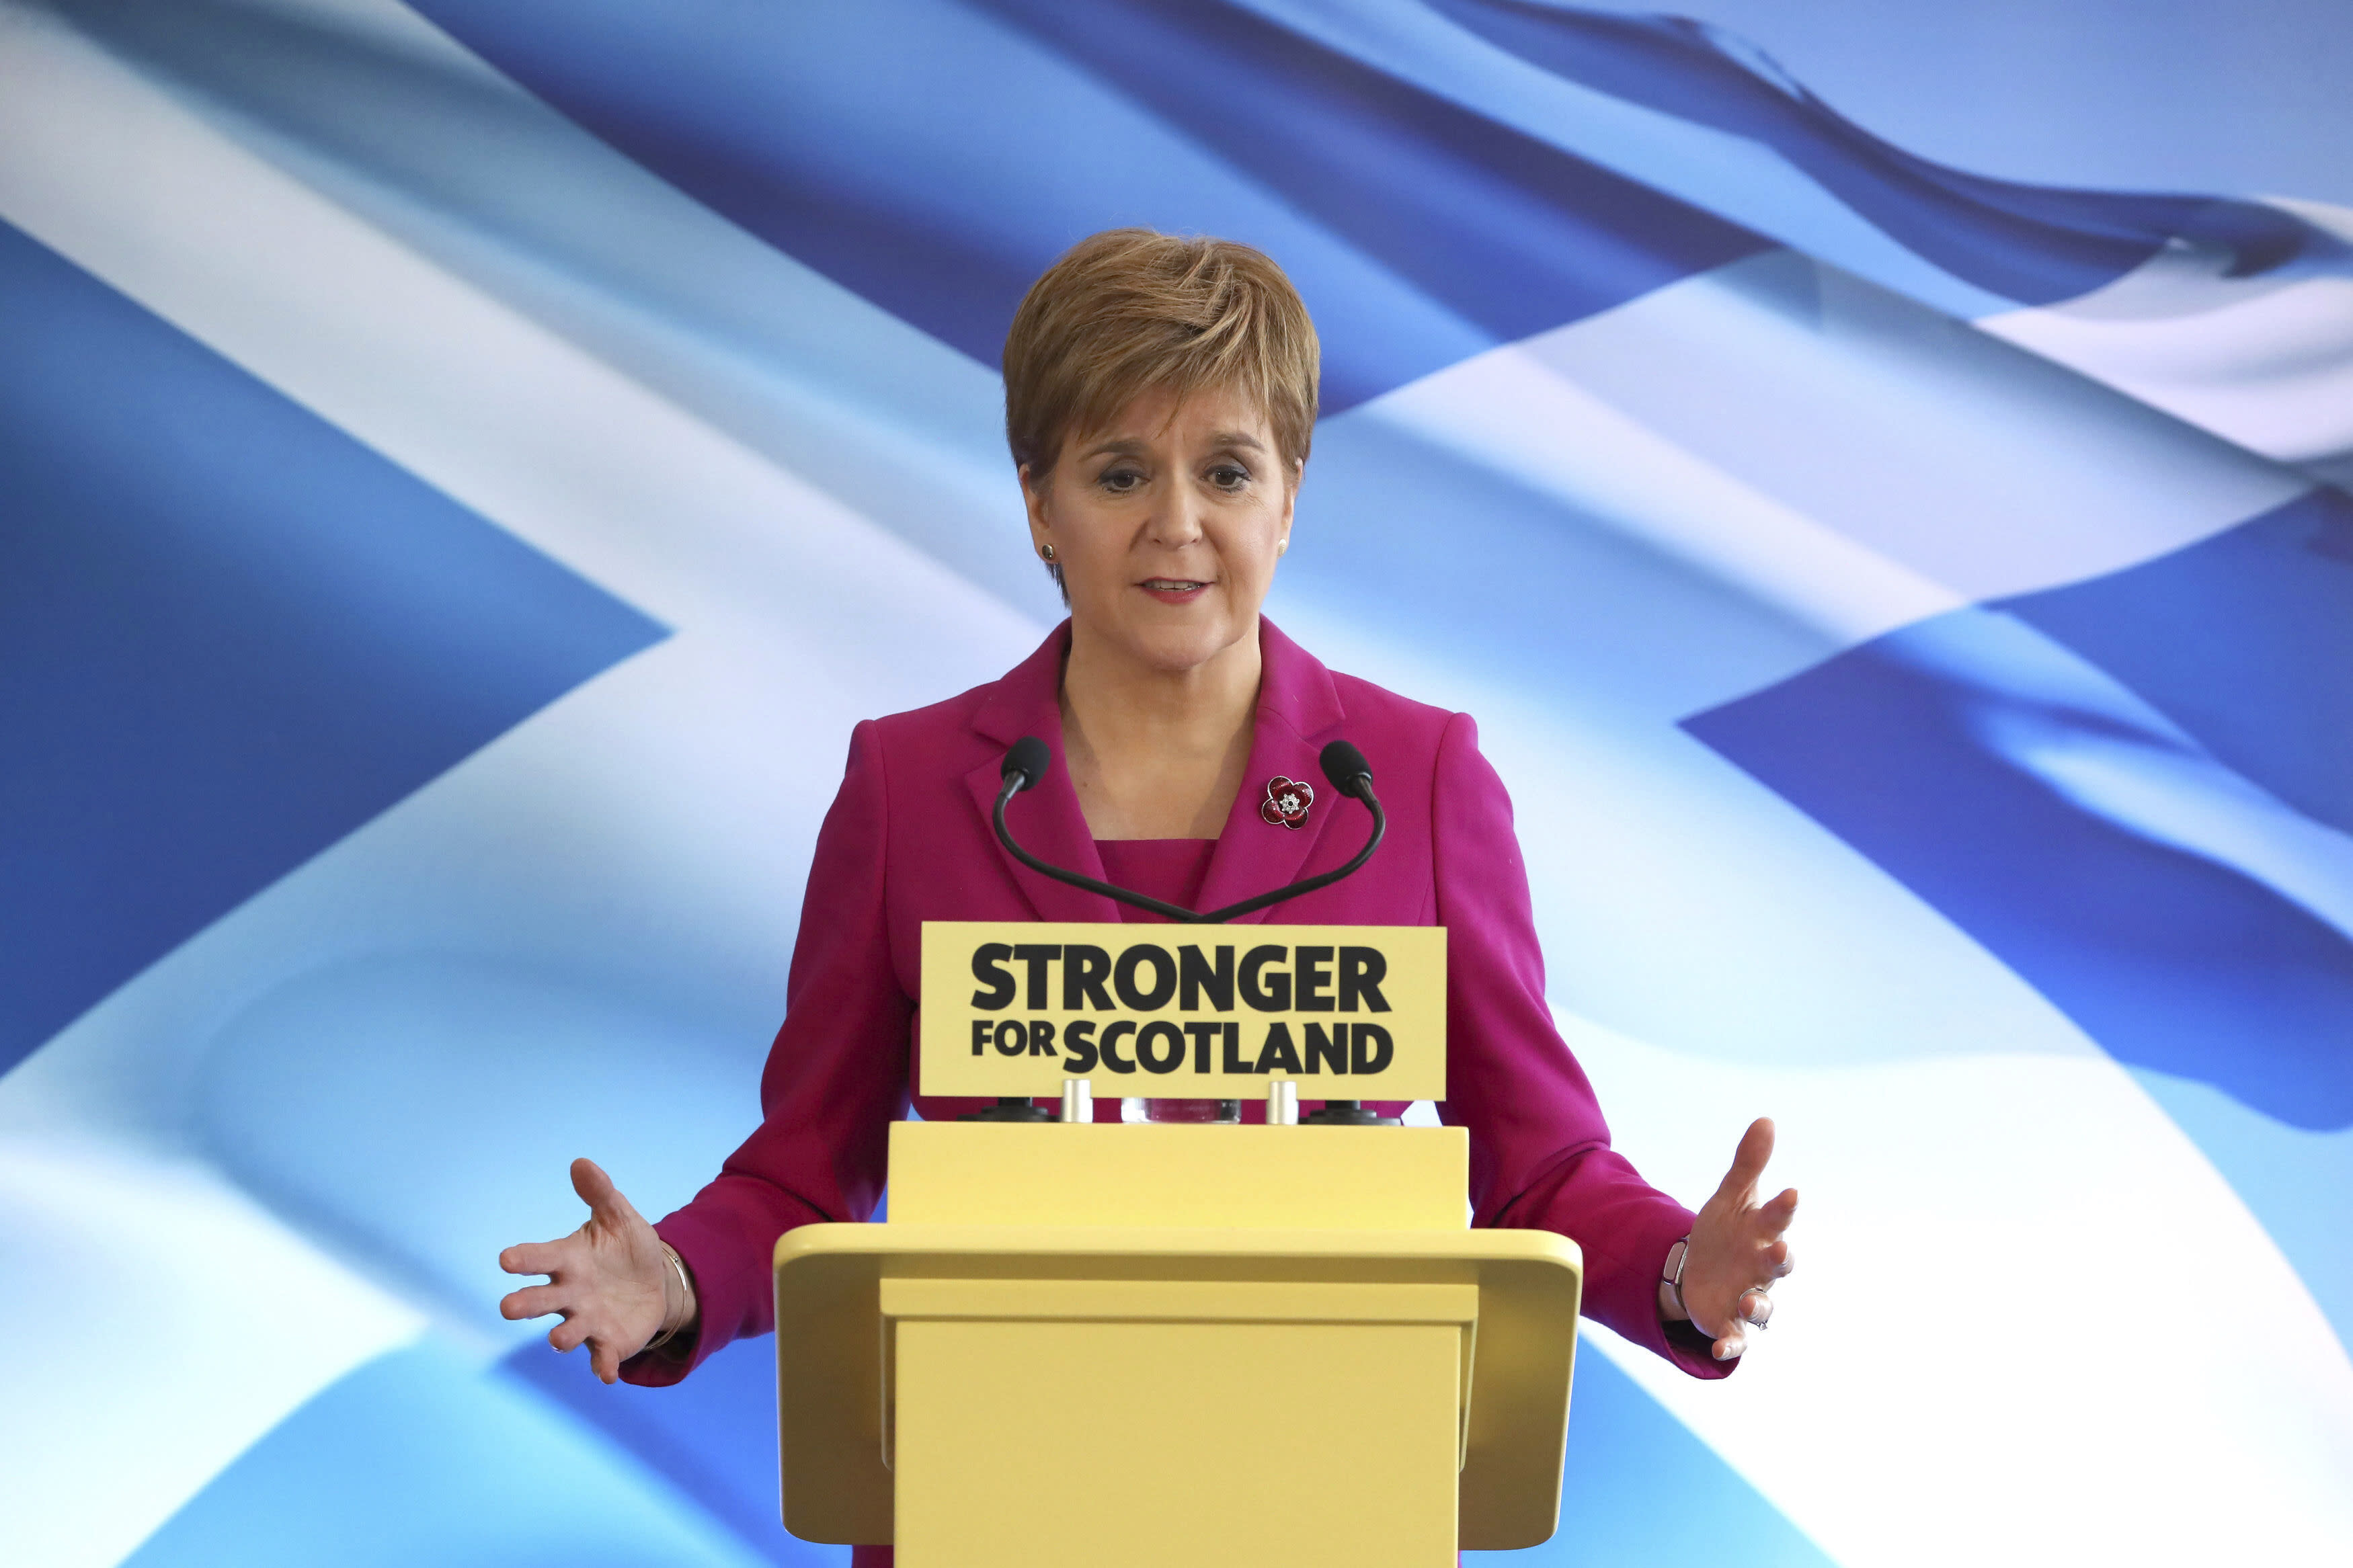 Scottish National Party (SNP) leader Nicola Sturgeon speaks at the launch of the party's General Election campaign backdropped by the Scottish saltire flag, in Edinburgh, Scotland, Friday Nov. 8, 2019. The Scottish National Party is officially launching its campaign for Britain's upcoming Dec. 12 election, with the SNP hoping to put Scotland a step closer to independence. (Andrew Milligan/PA via AP)